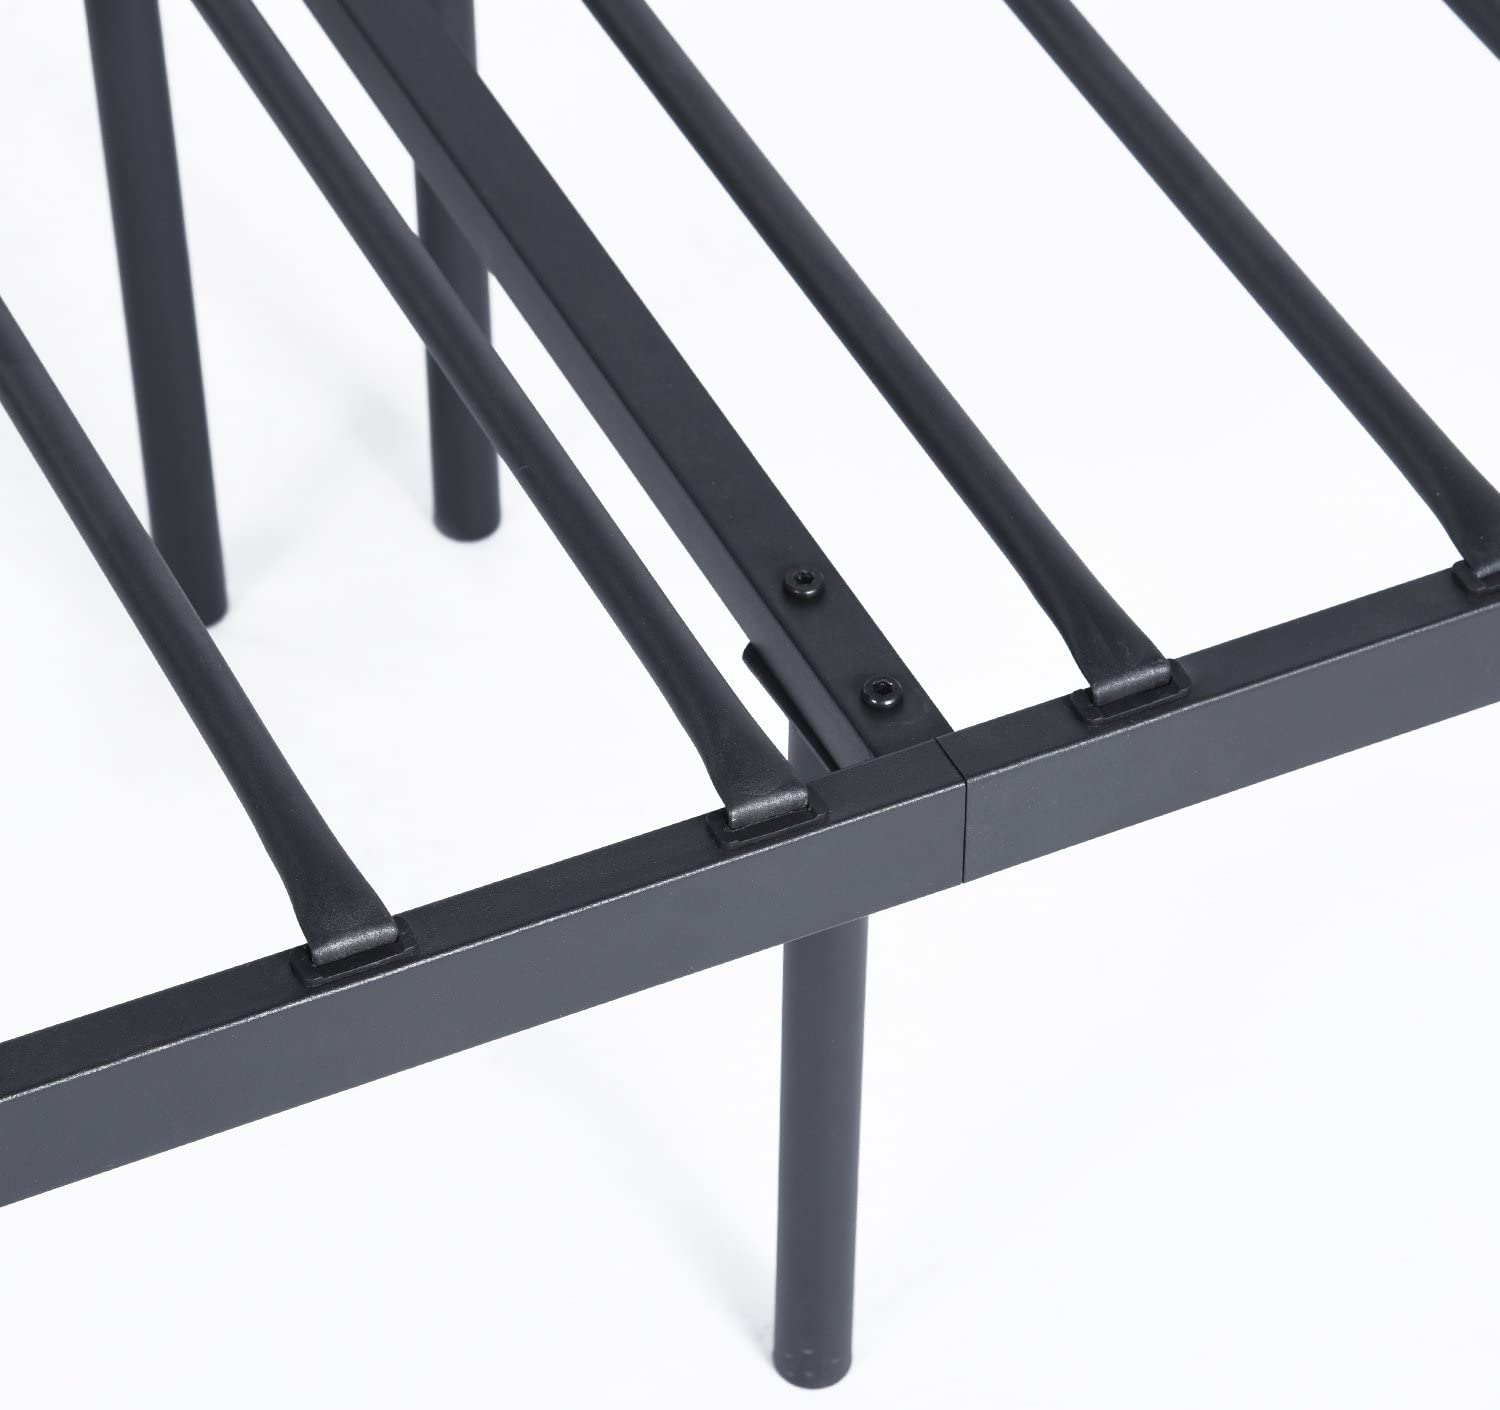 Furniture R 14 Inch Classic Metal Platform Bed Daybed Frame with Steel Slat Support//Mattress Foundation Balck